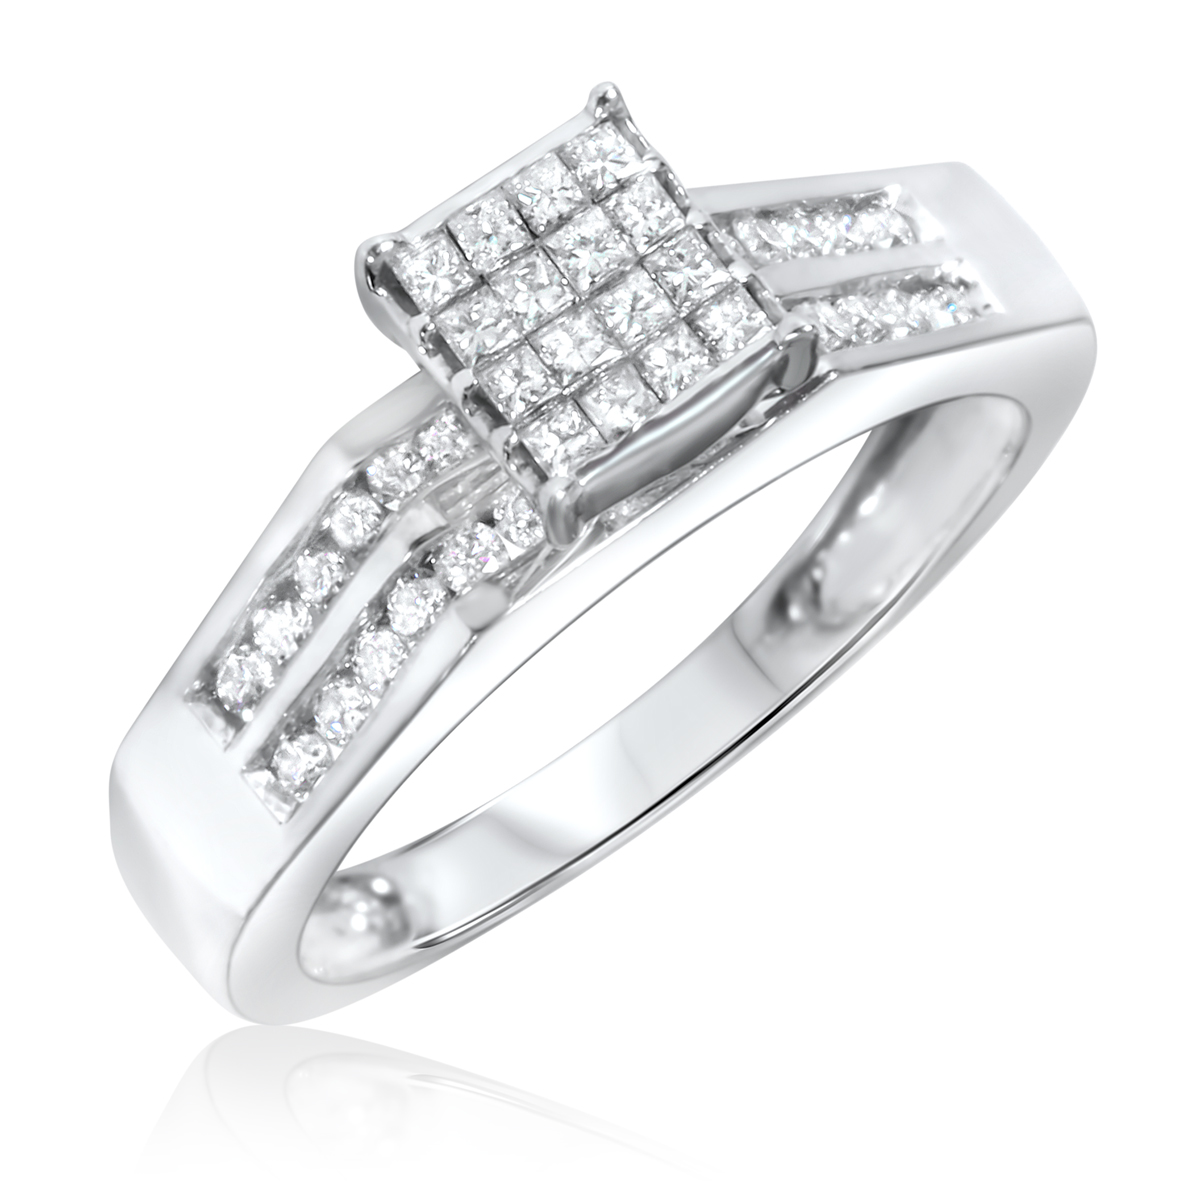 1 carat diamond trio wedding ring set 14k white gold my trio rings bt111w14k - Engagement And Wedding Ring Set